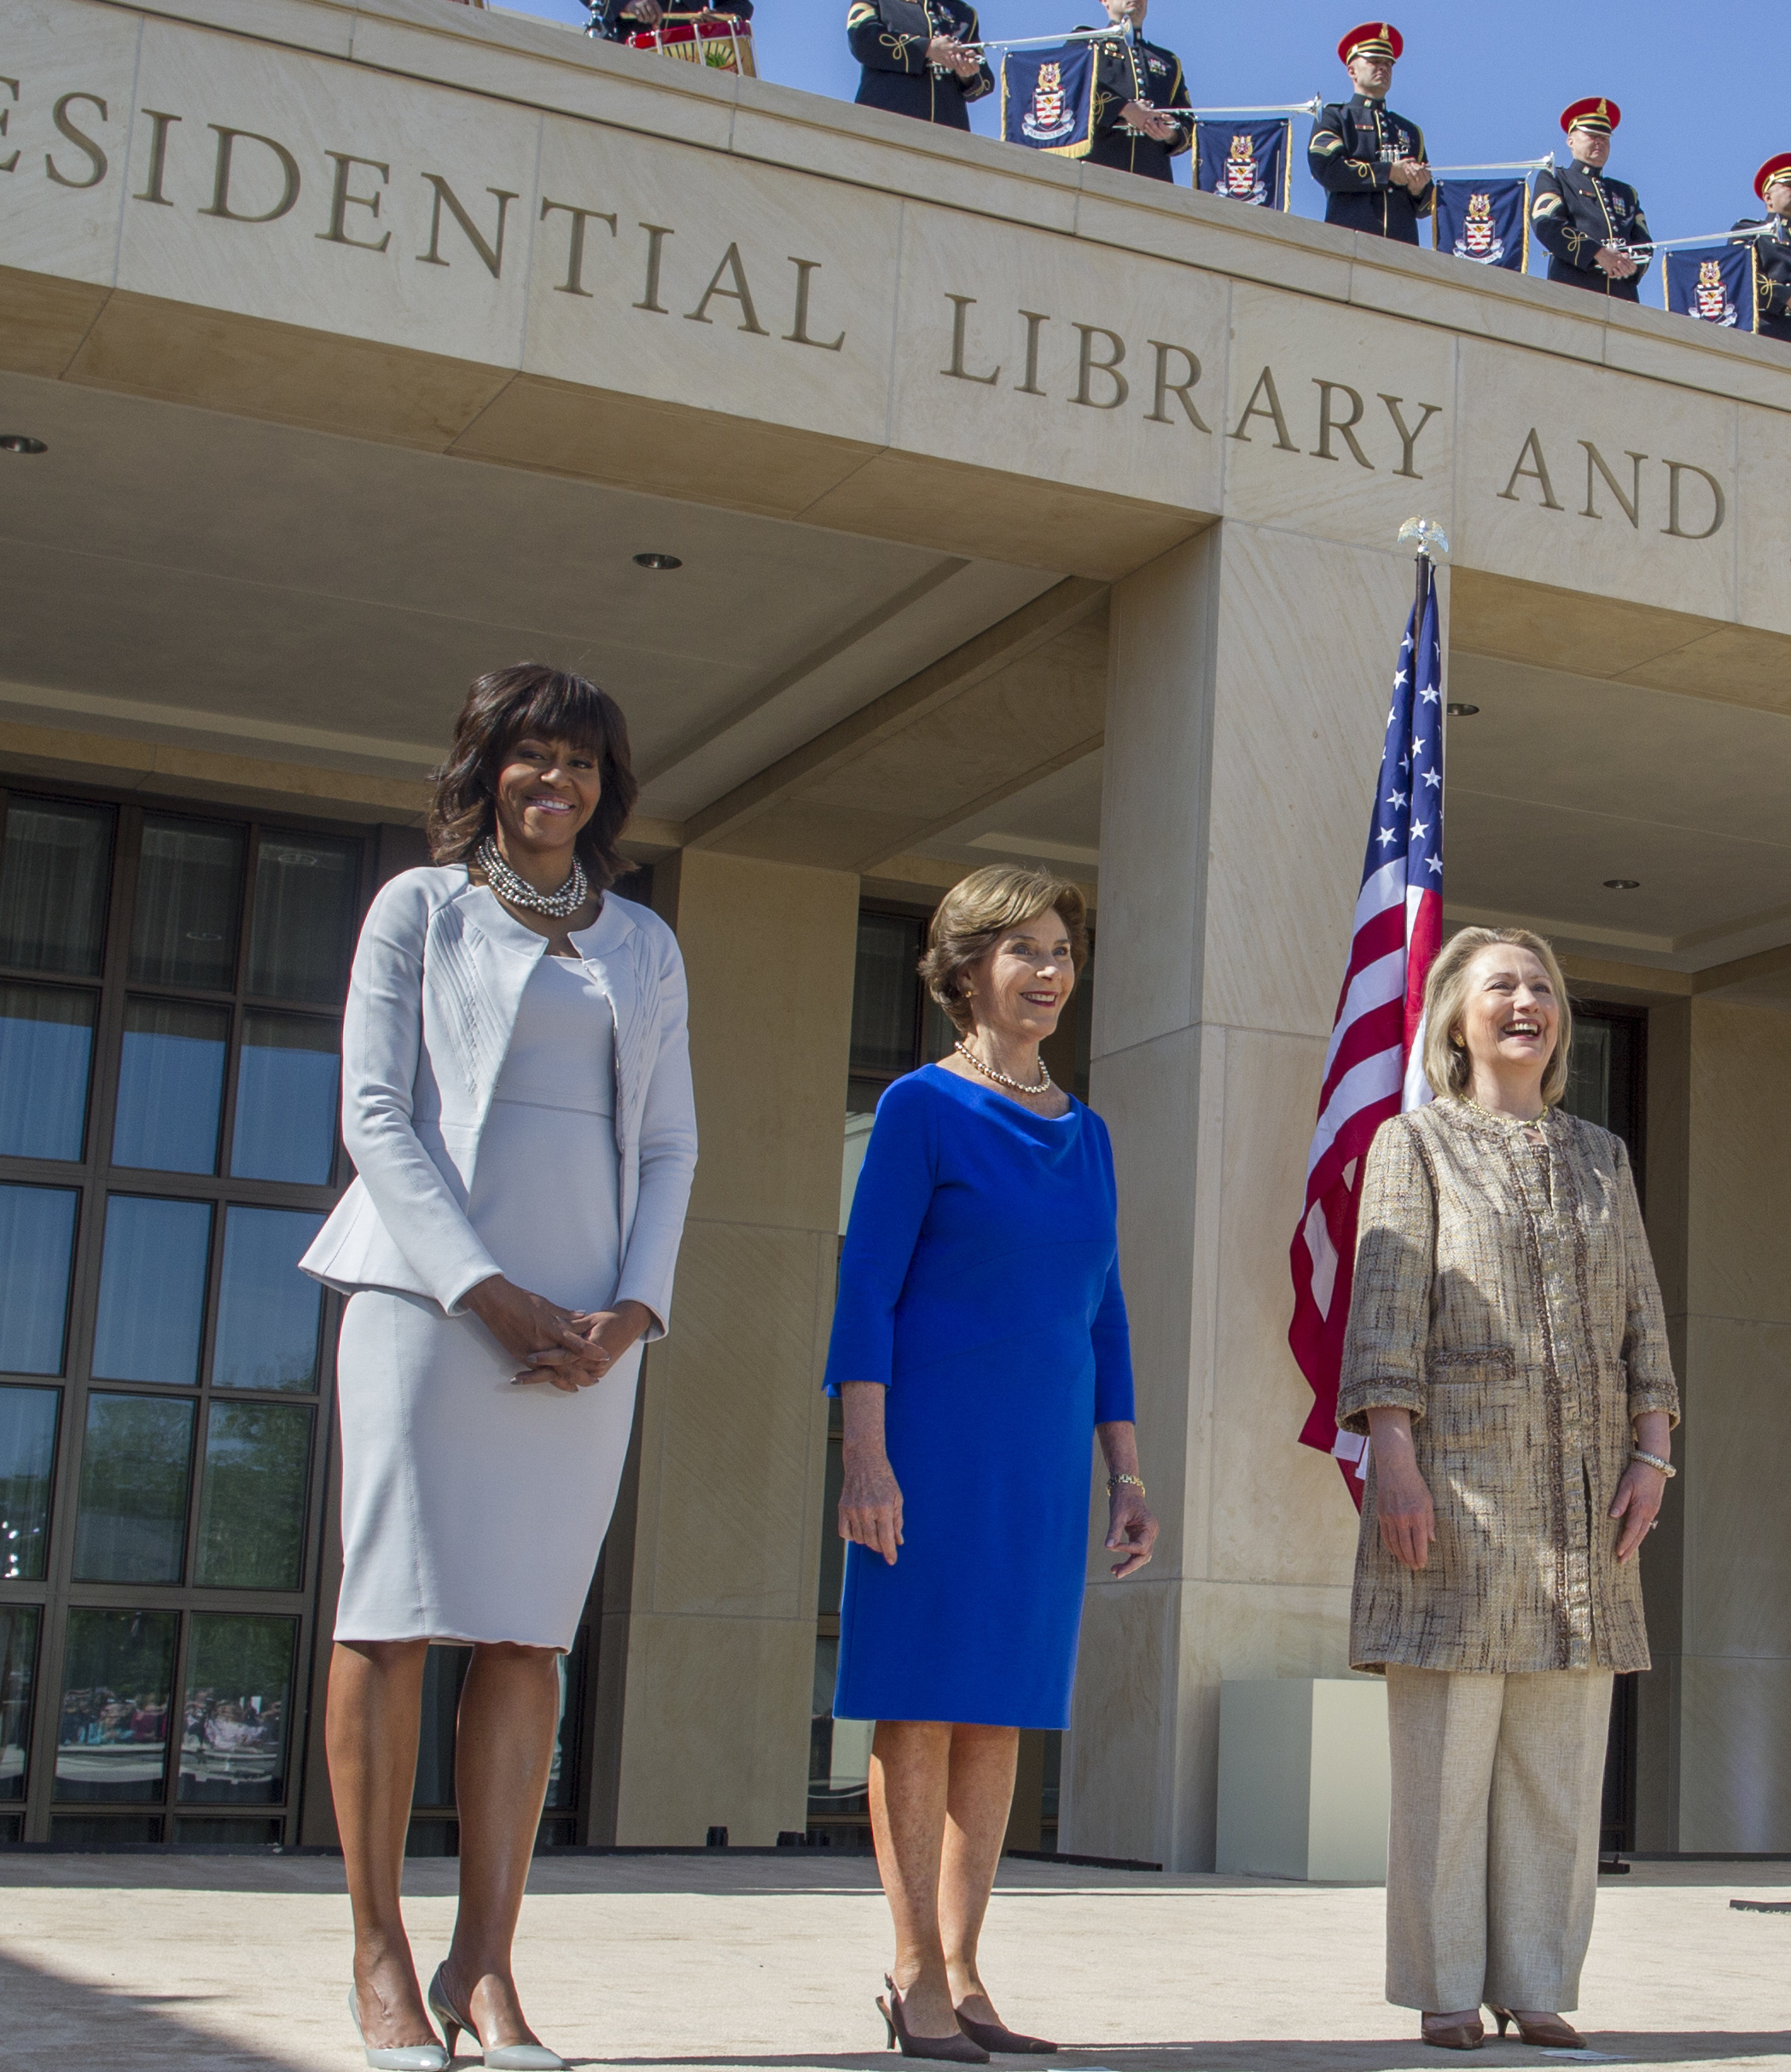 U.S. First Lady Michelle Obama (L) poses with former first ladies (2nd L-R) Laura Bush, Hillary Clinton, Barbara Bush and Rosalynn Carter as they attend the dedication ceremony for the George W. Bush Presidential Center in Dallas (Photo by Brooks Kraft LLC/Corbis via Getty Images)